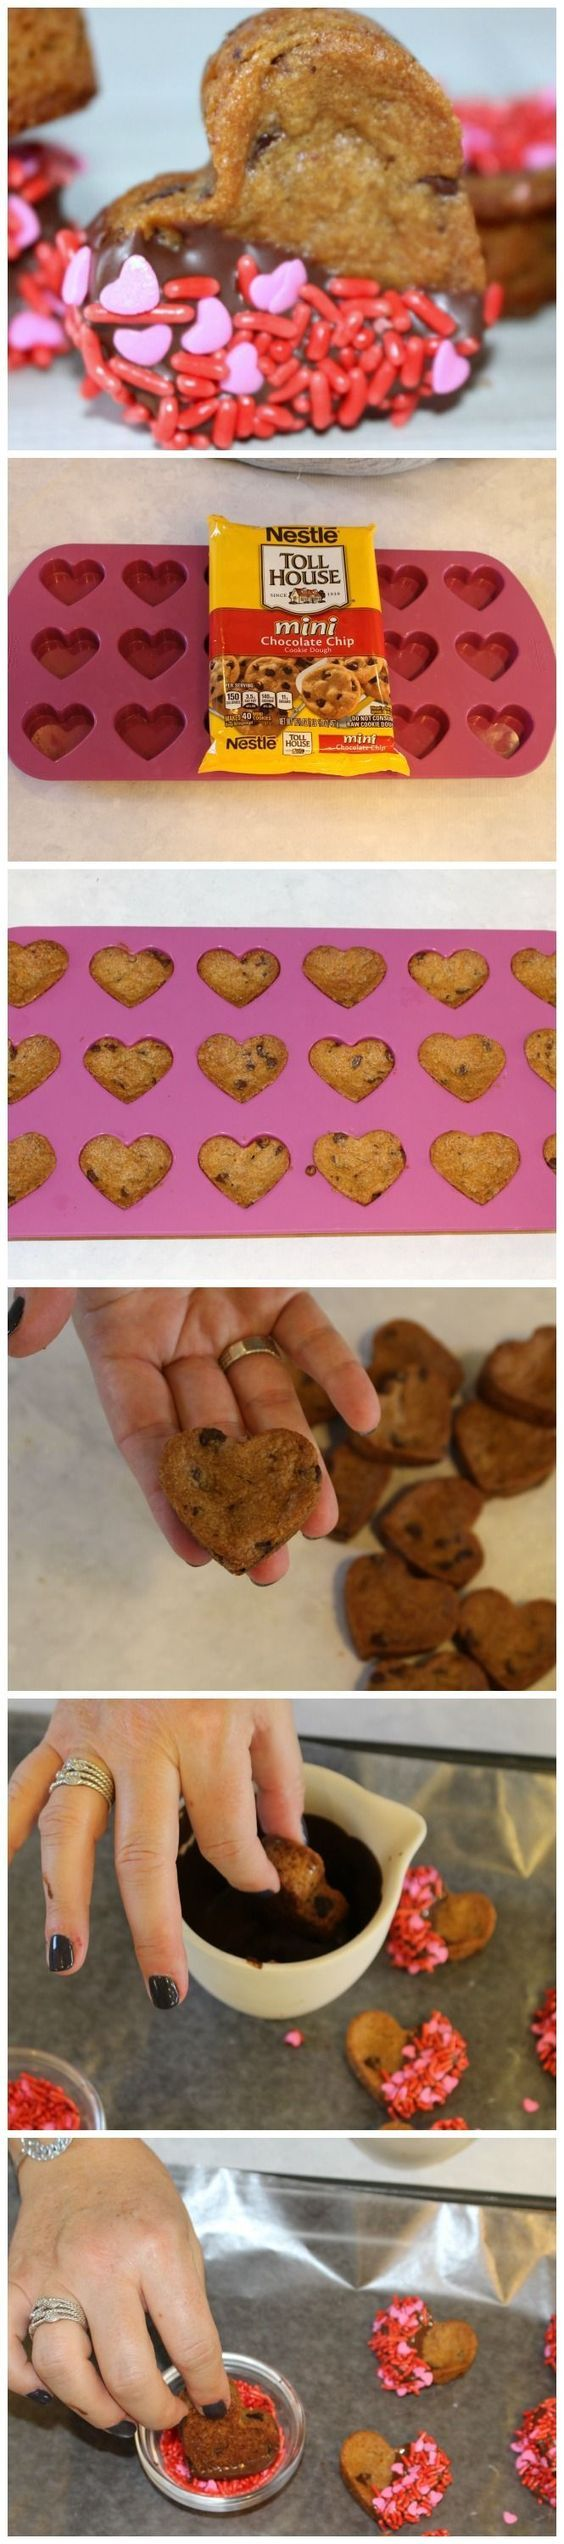 How to make chocolate chip heart cookies for Valentines Day: